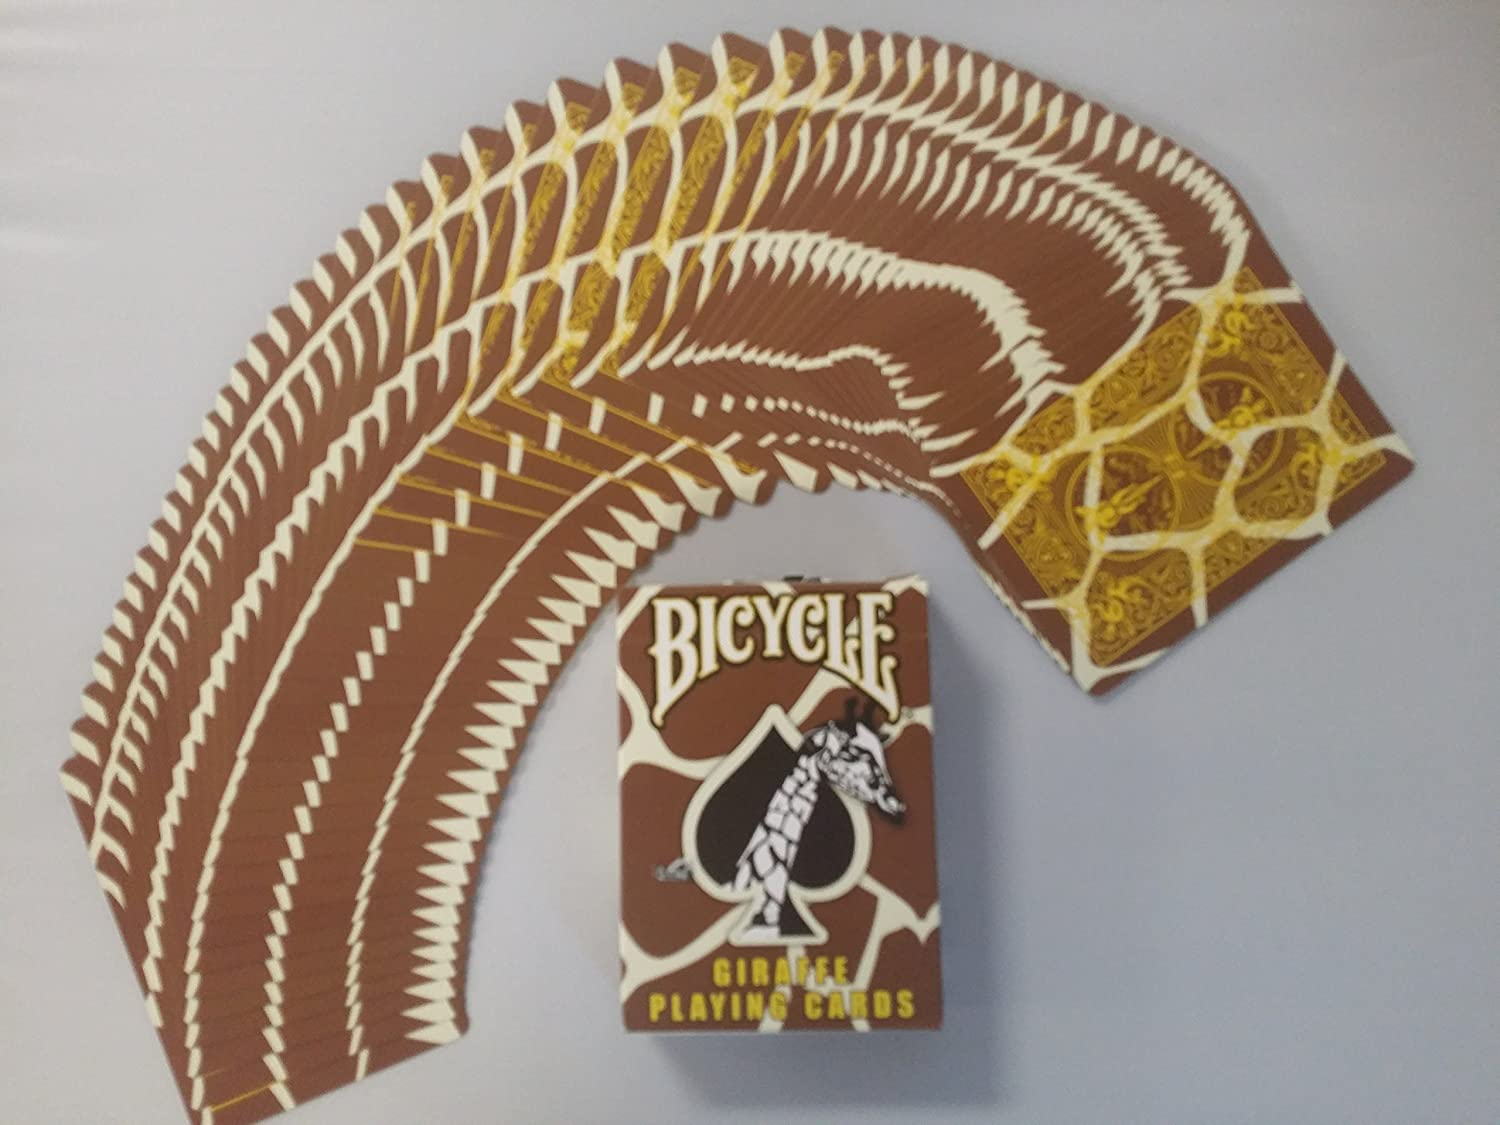 Amazon.com: Bicycle Giraffe Deck Playing Cards – Brown ...